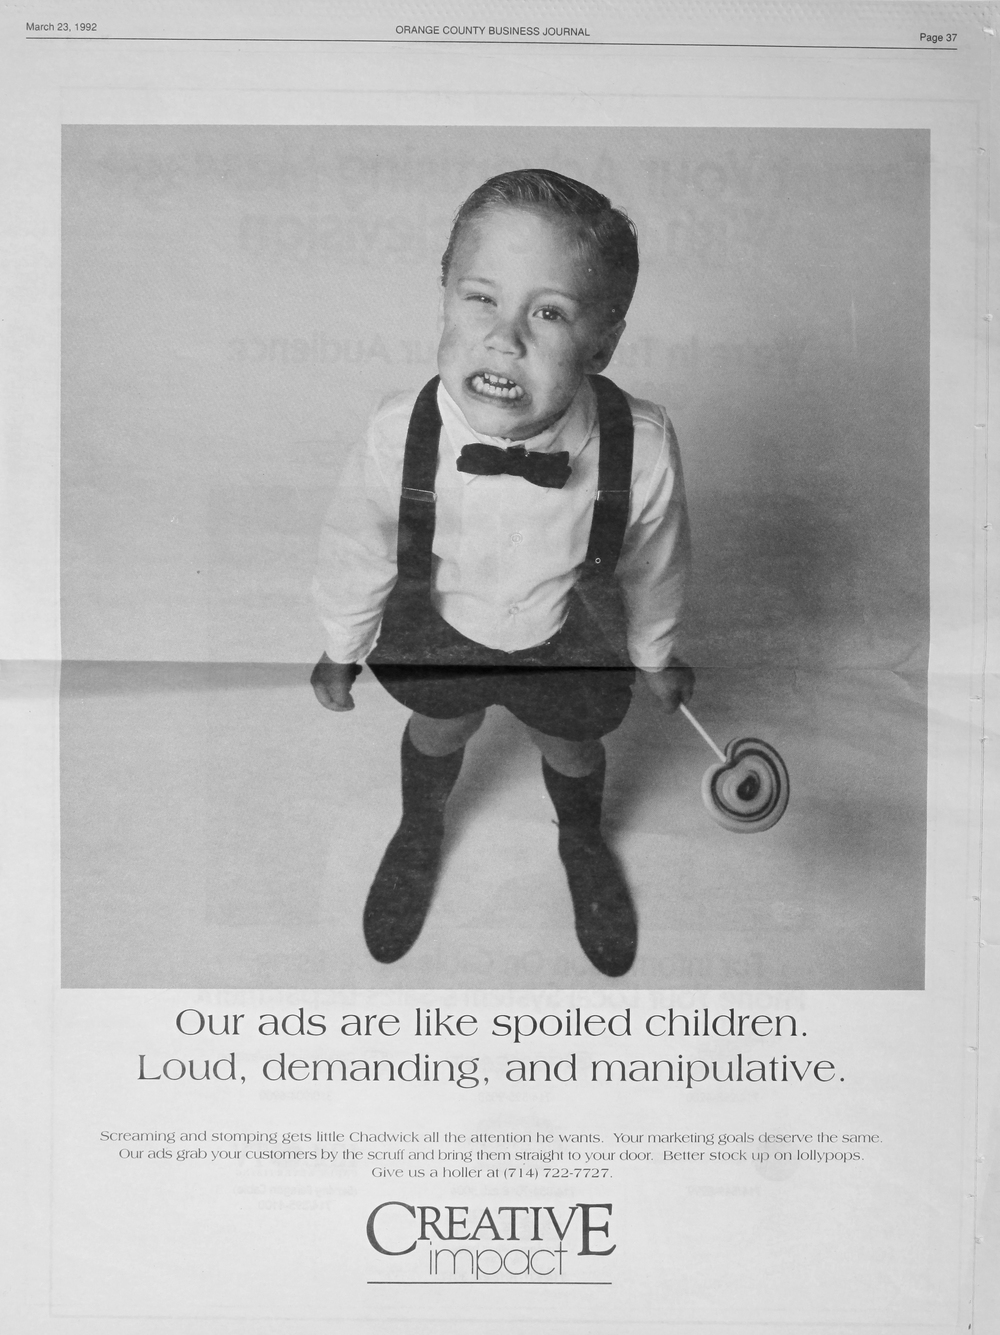 spoiled children print ad